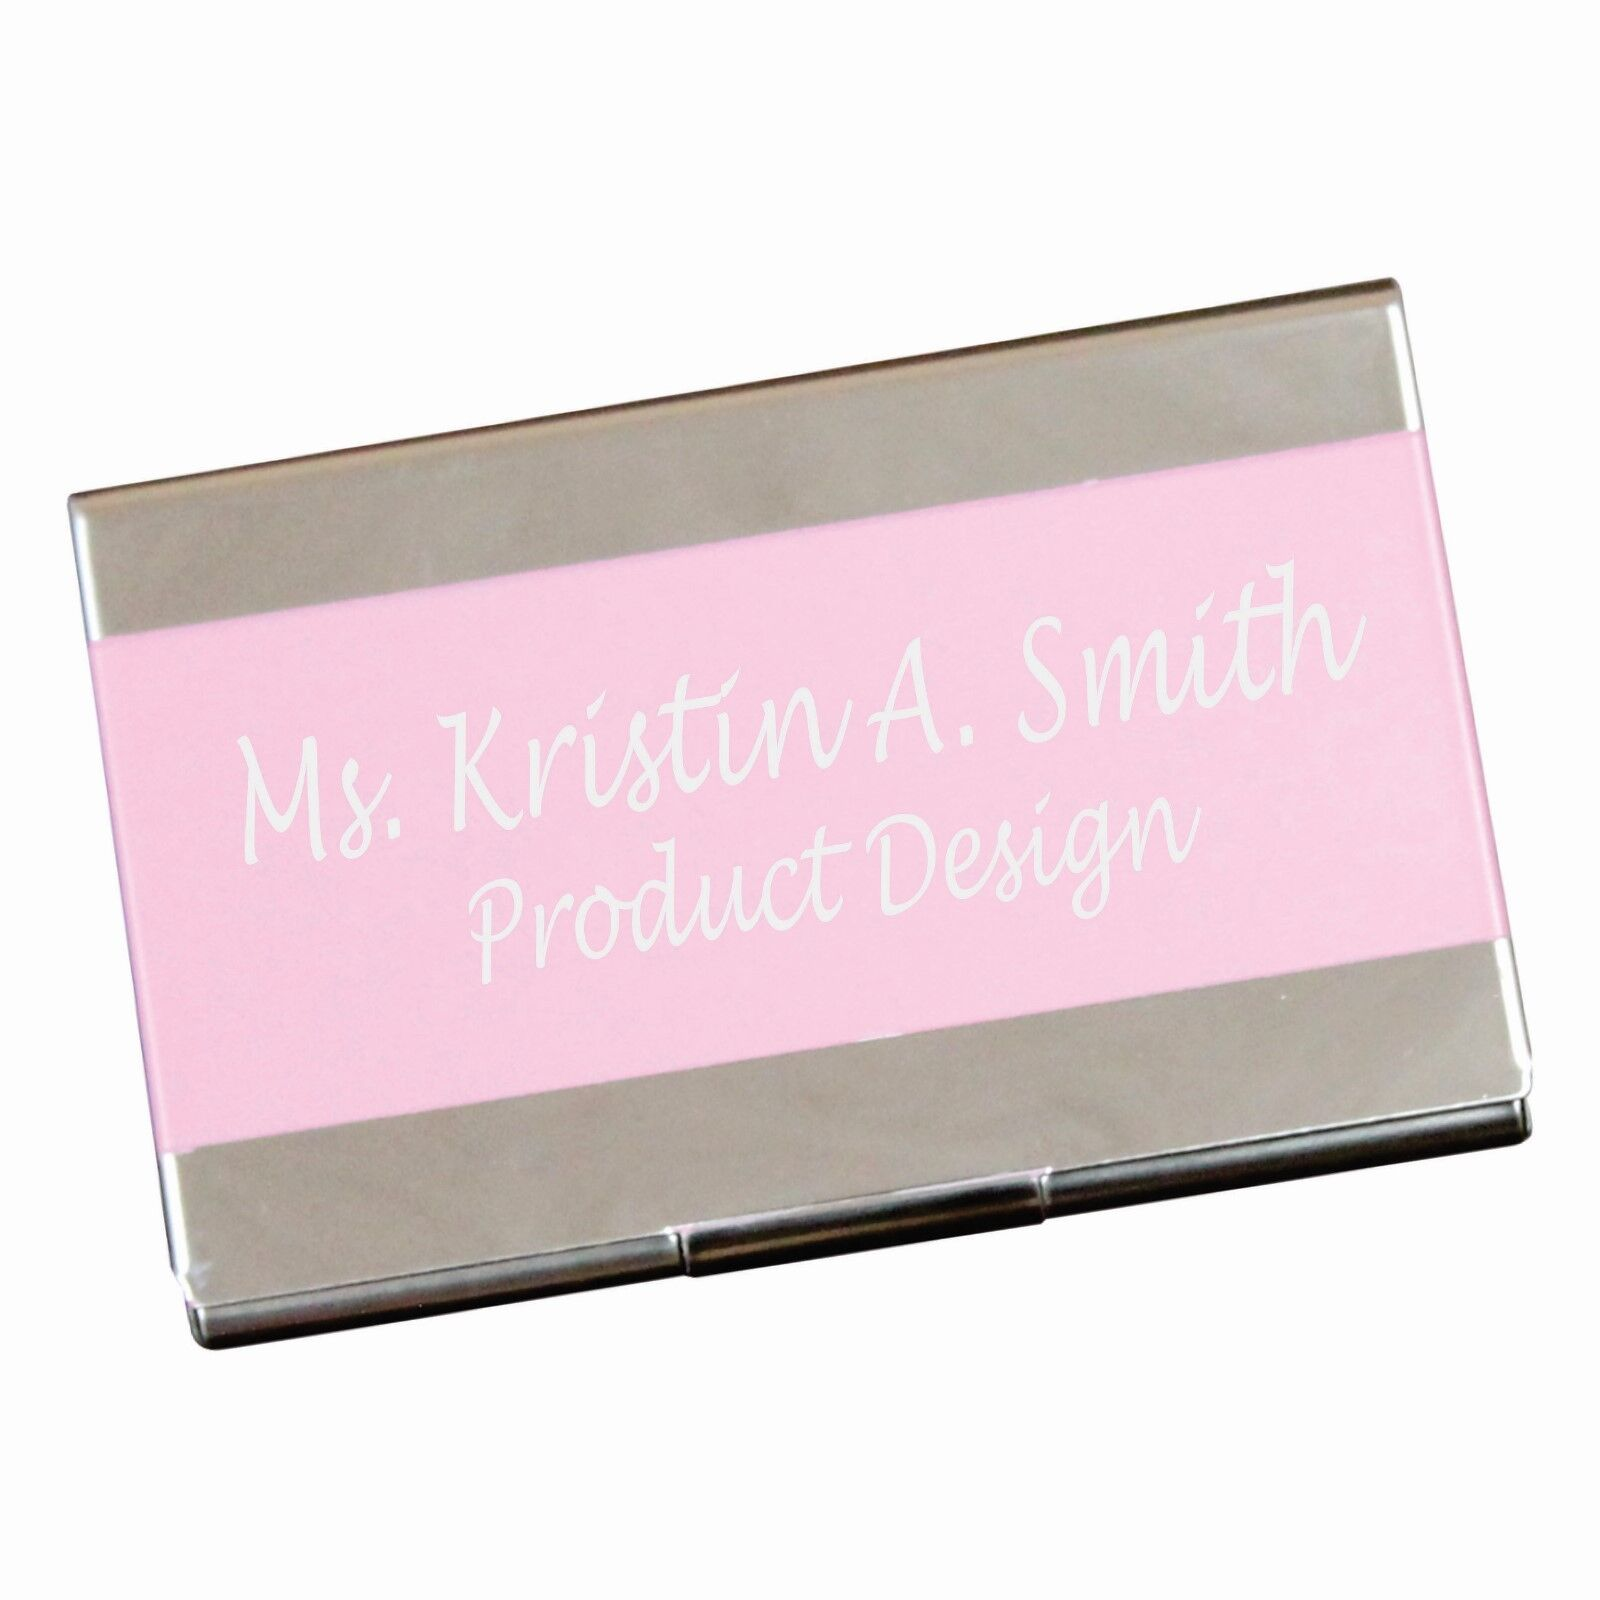 Personalized pink business card case holder custom engraved office personalized pink business card case holder custom engraved office gift colourmoves